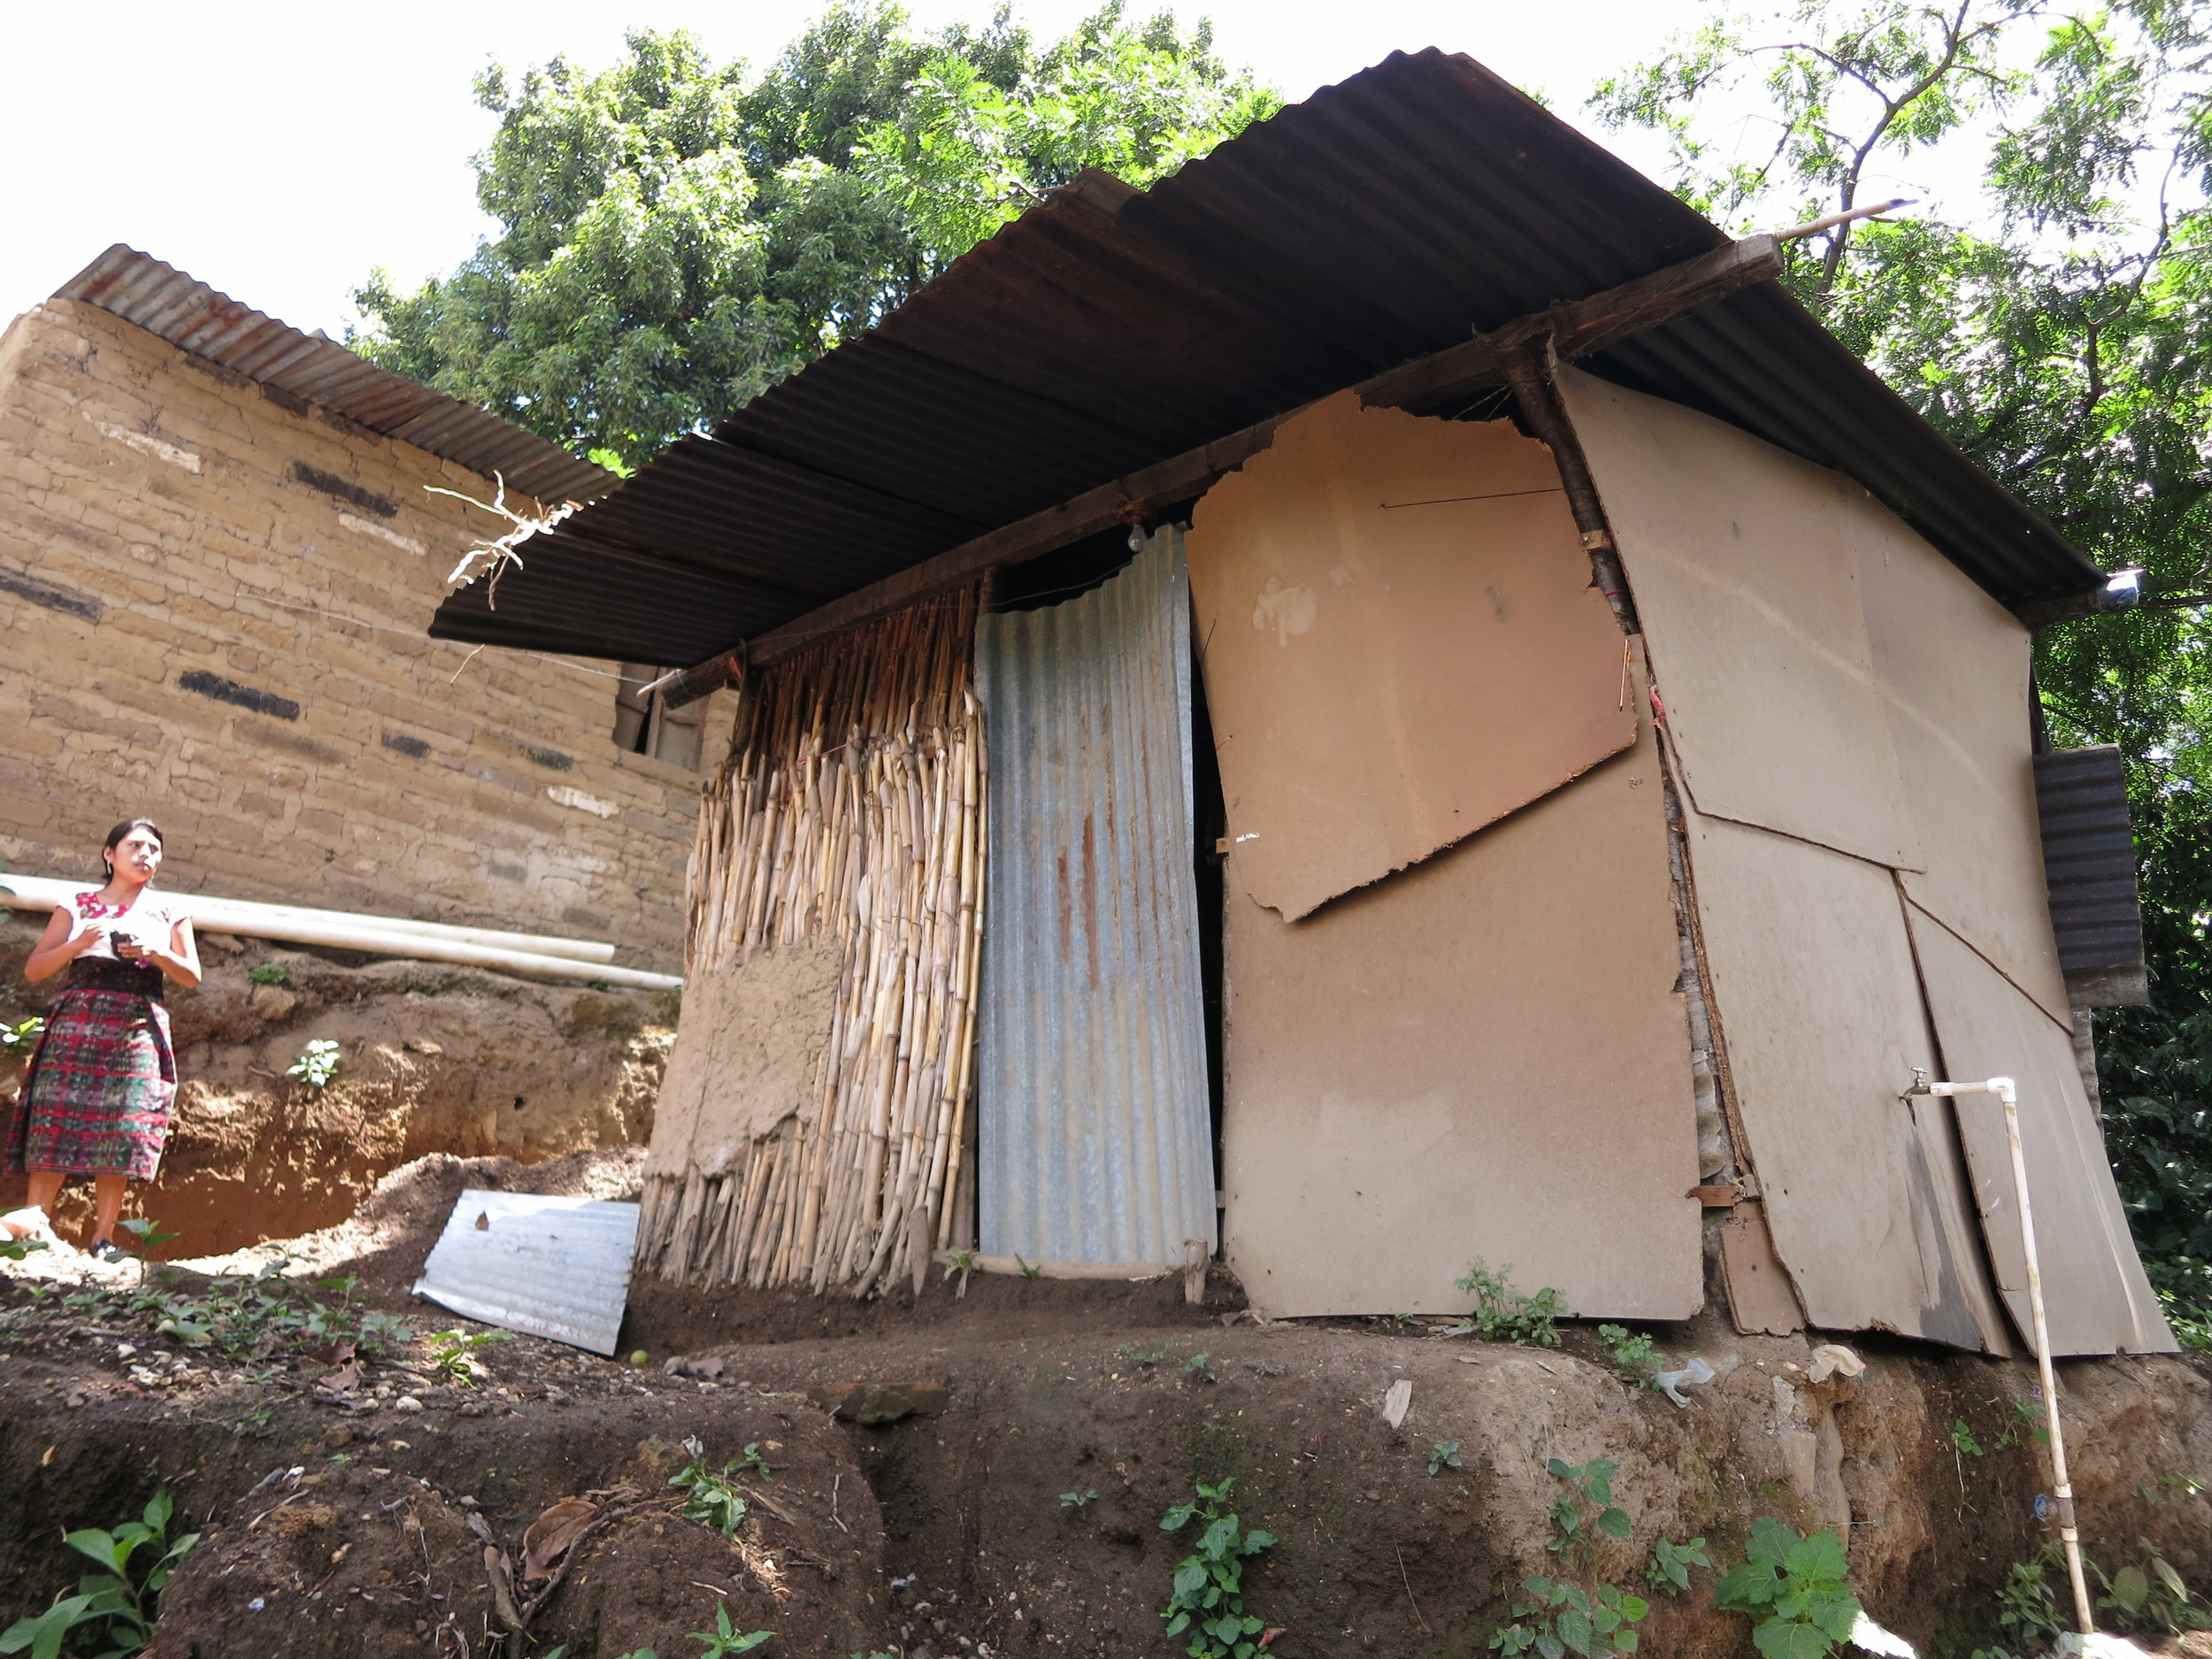 The current home of the family in San Pablo that will be receiving the next home built by ODIM Volunteers.